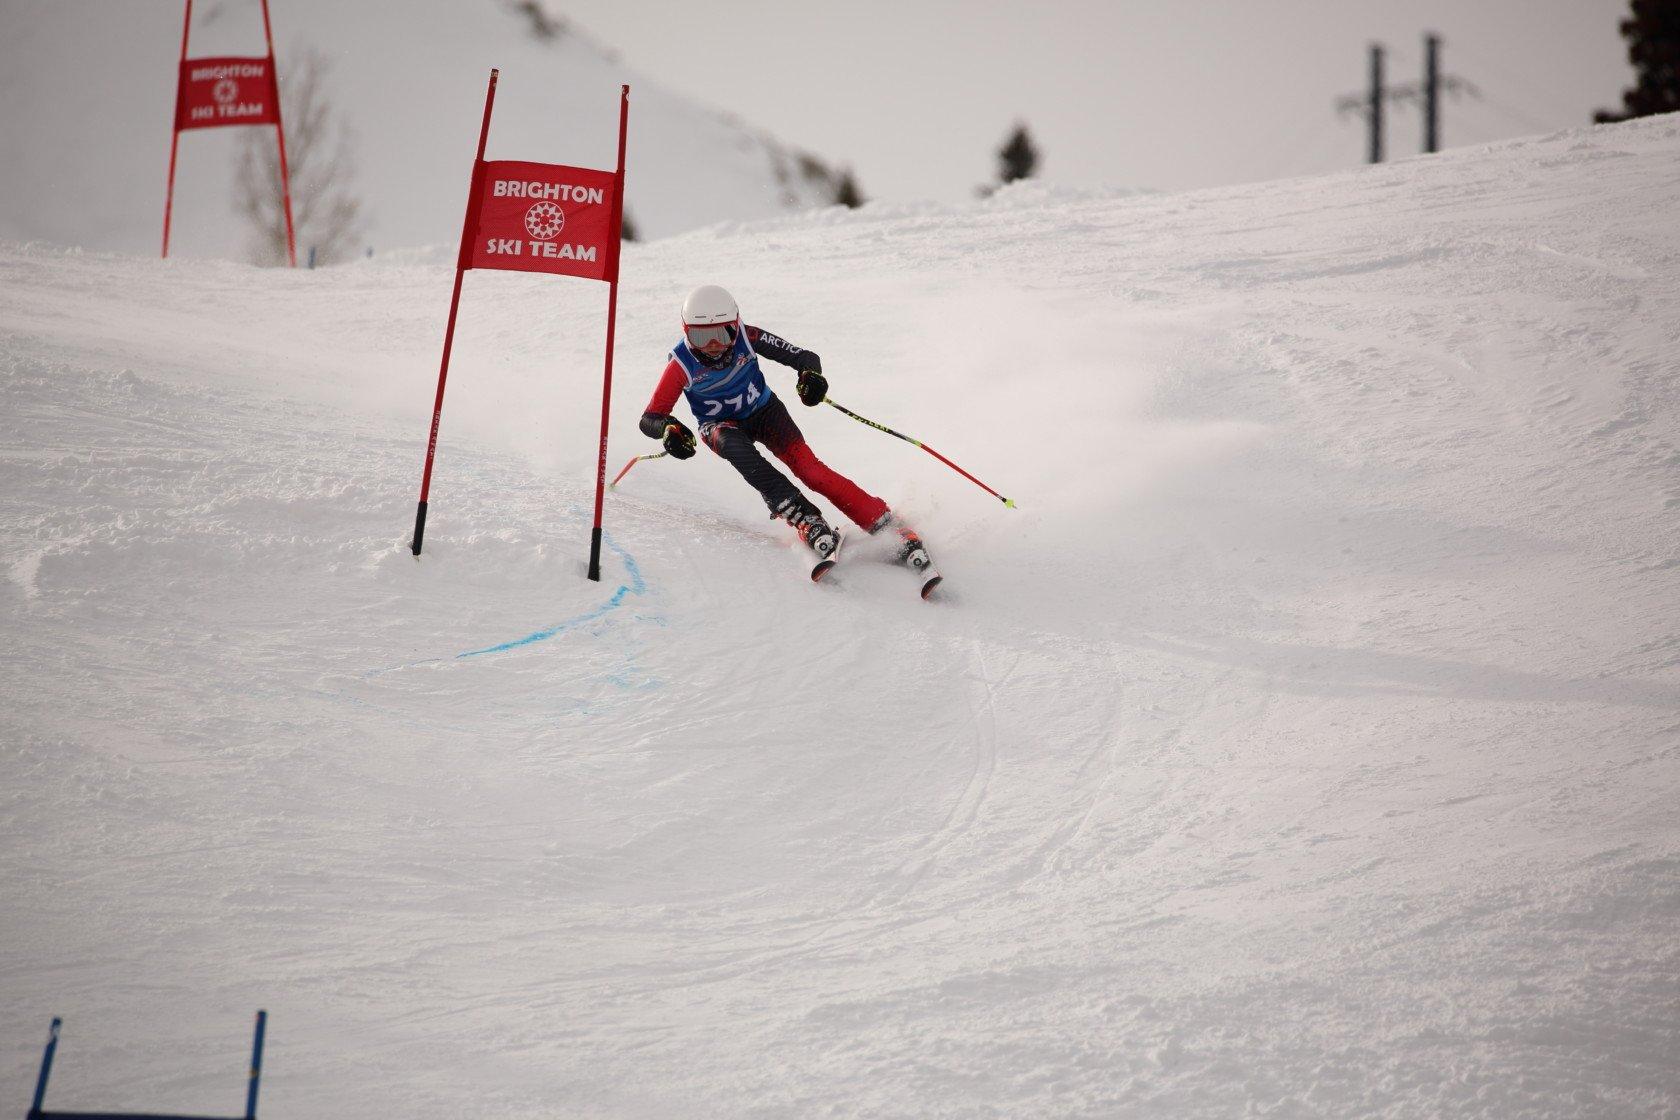 U12 boy Connor Stone in his Cup GS Speed Suit from Arctica